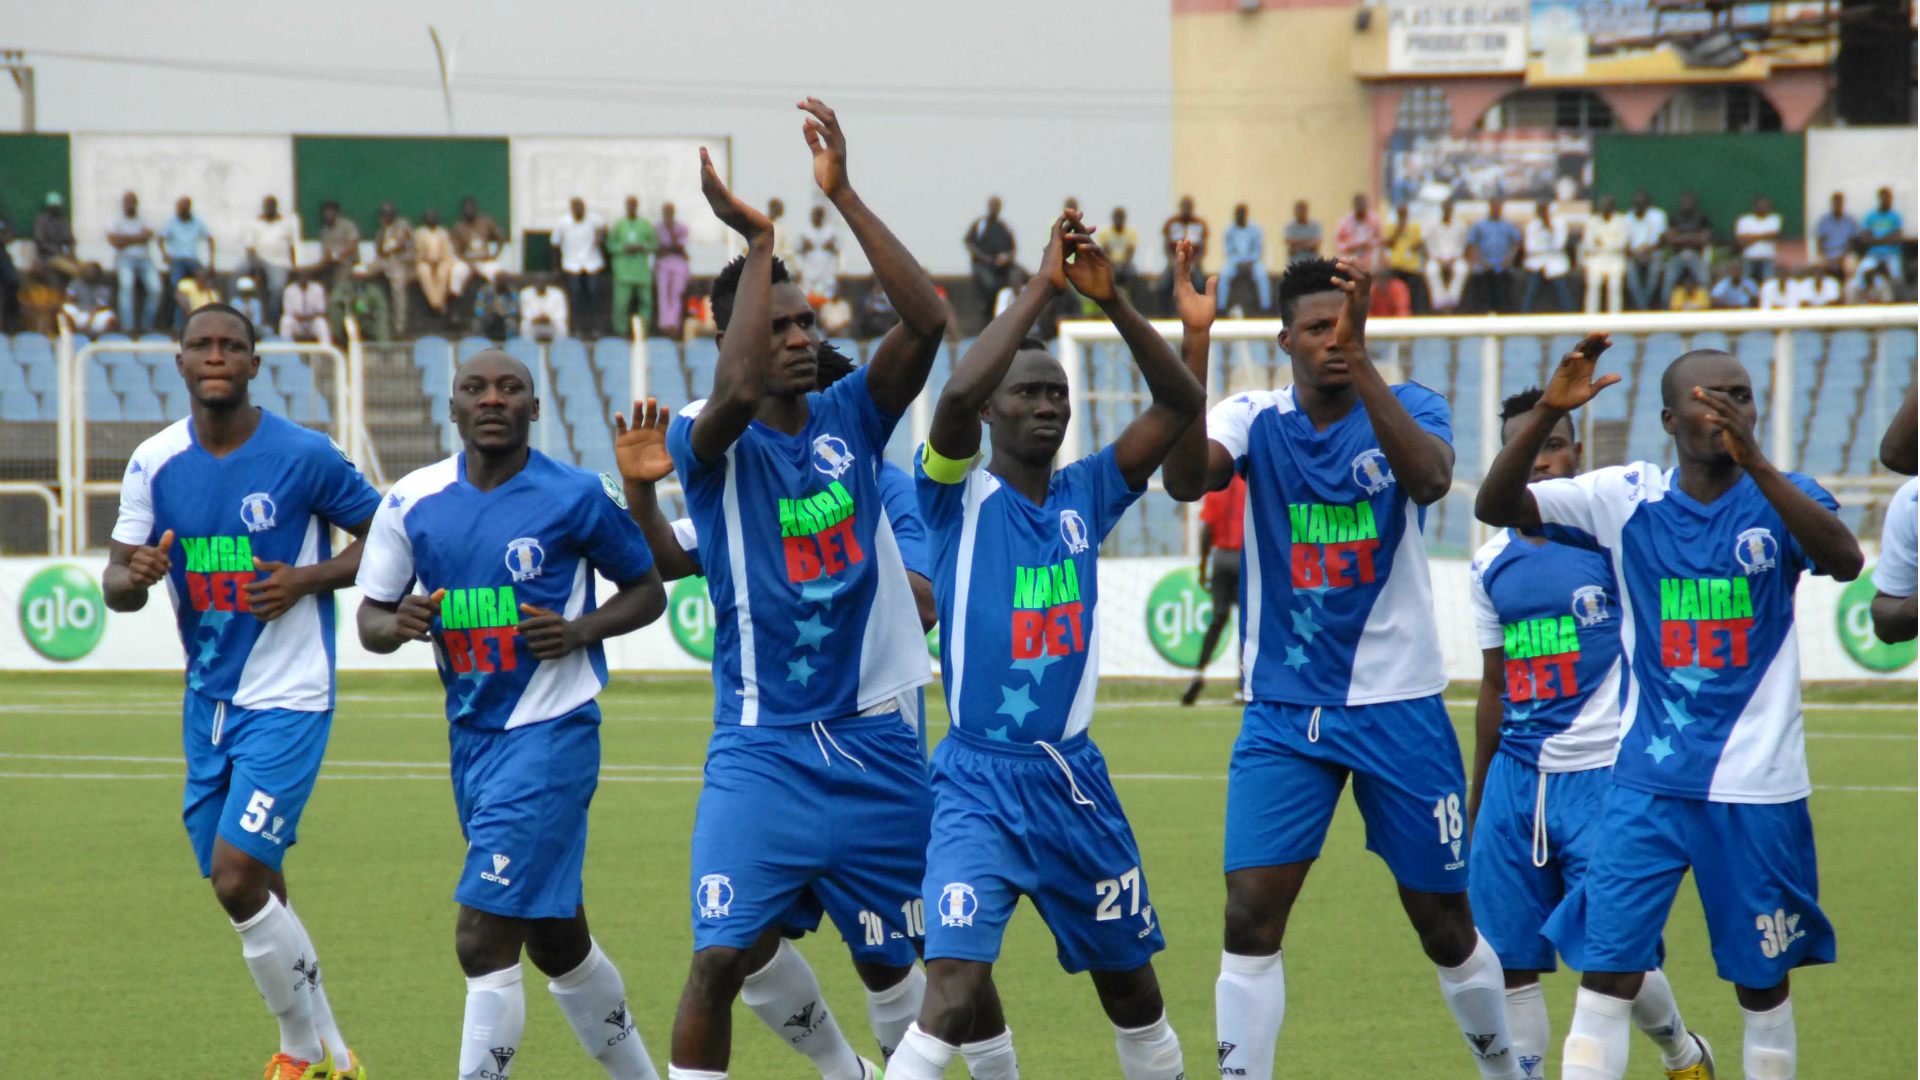 3SC resigns Okanlawon, Tembe and Orelope ahead of next season